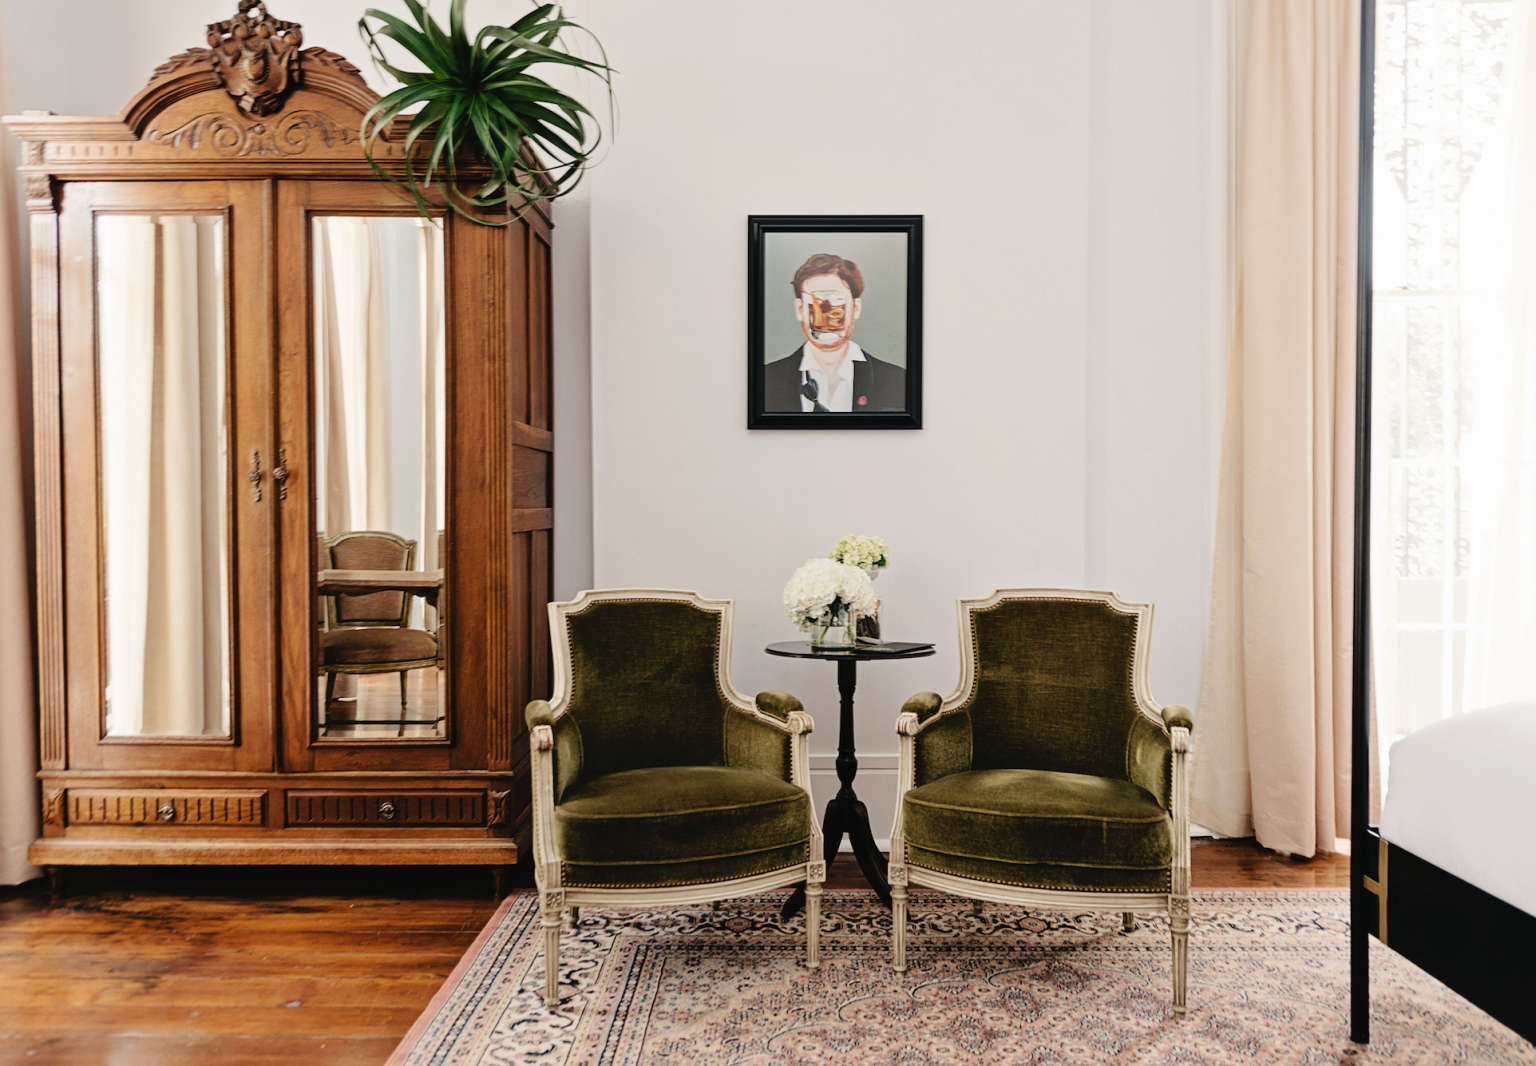 henry hall hotel new orleans chairs armoire